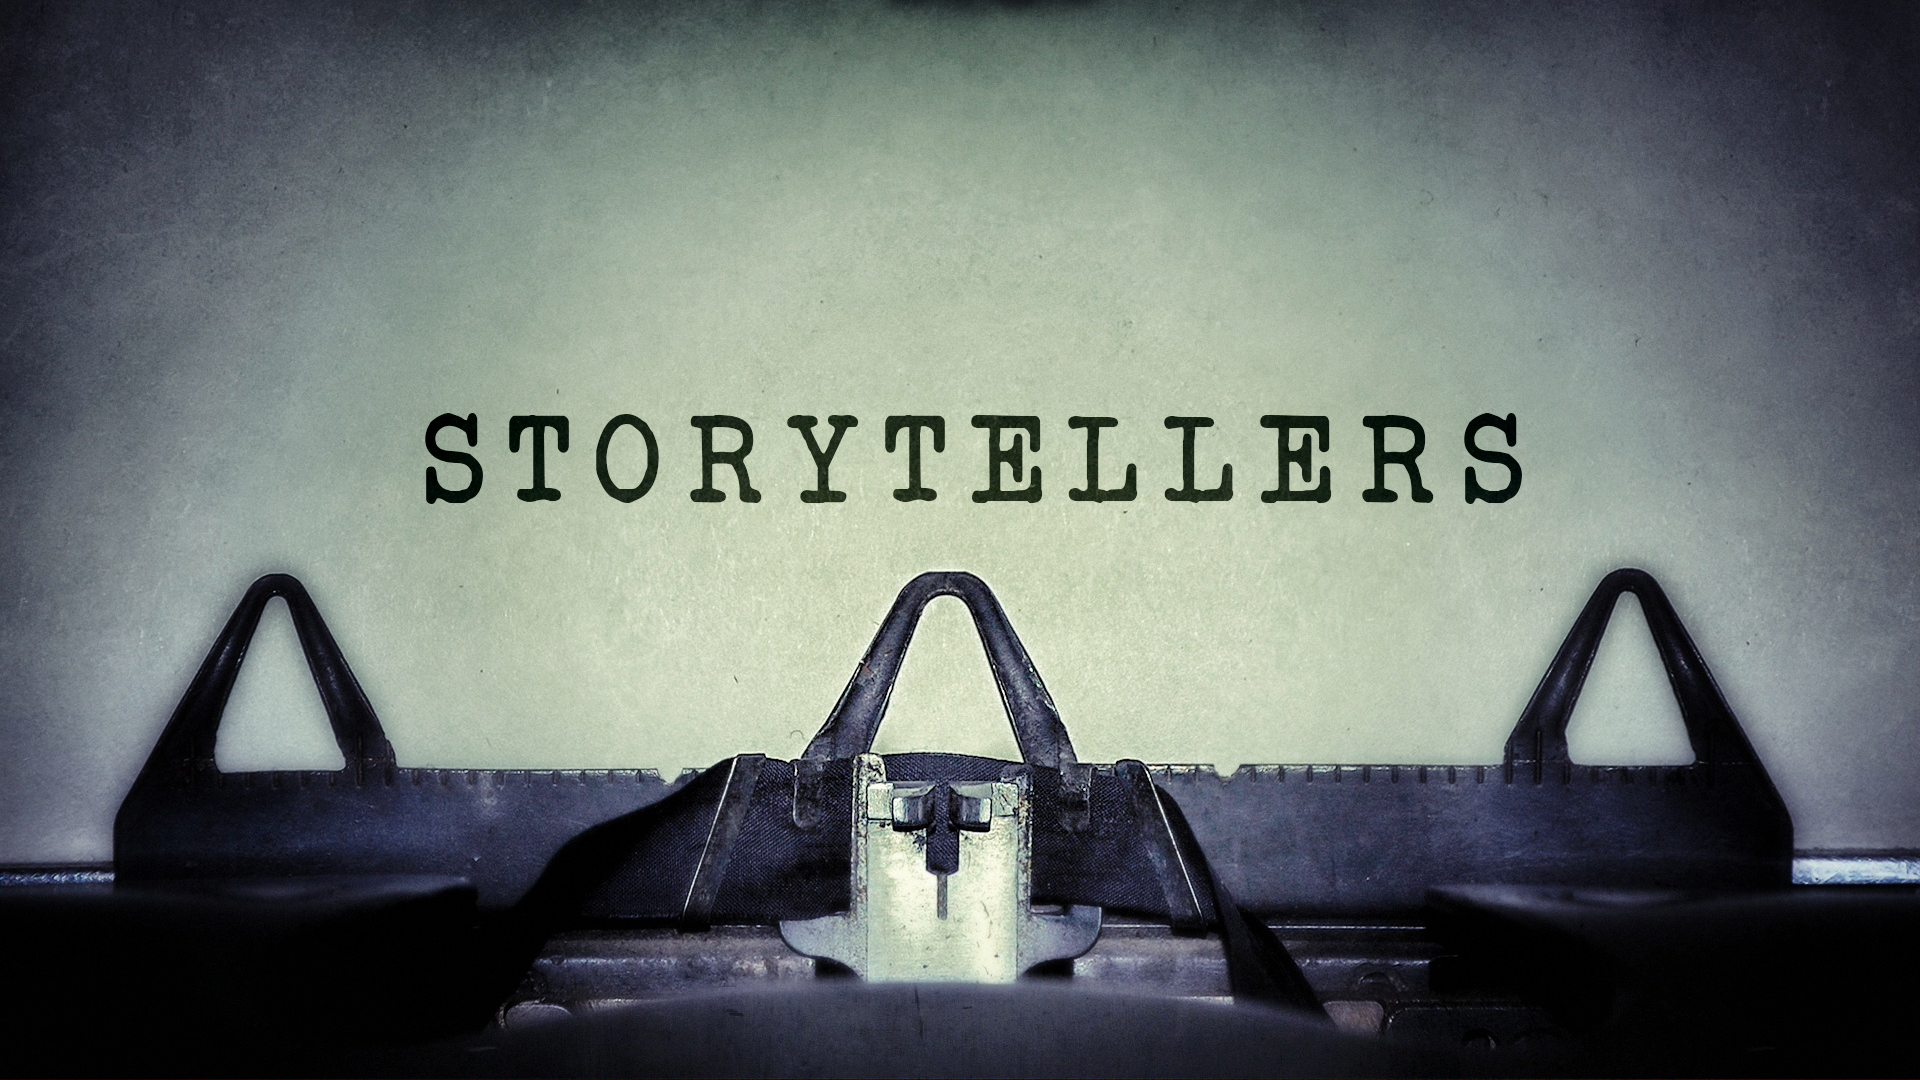 STORYTELLERS - A film has three directors - thescriptblog.com